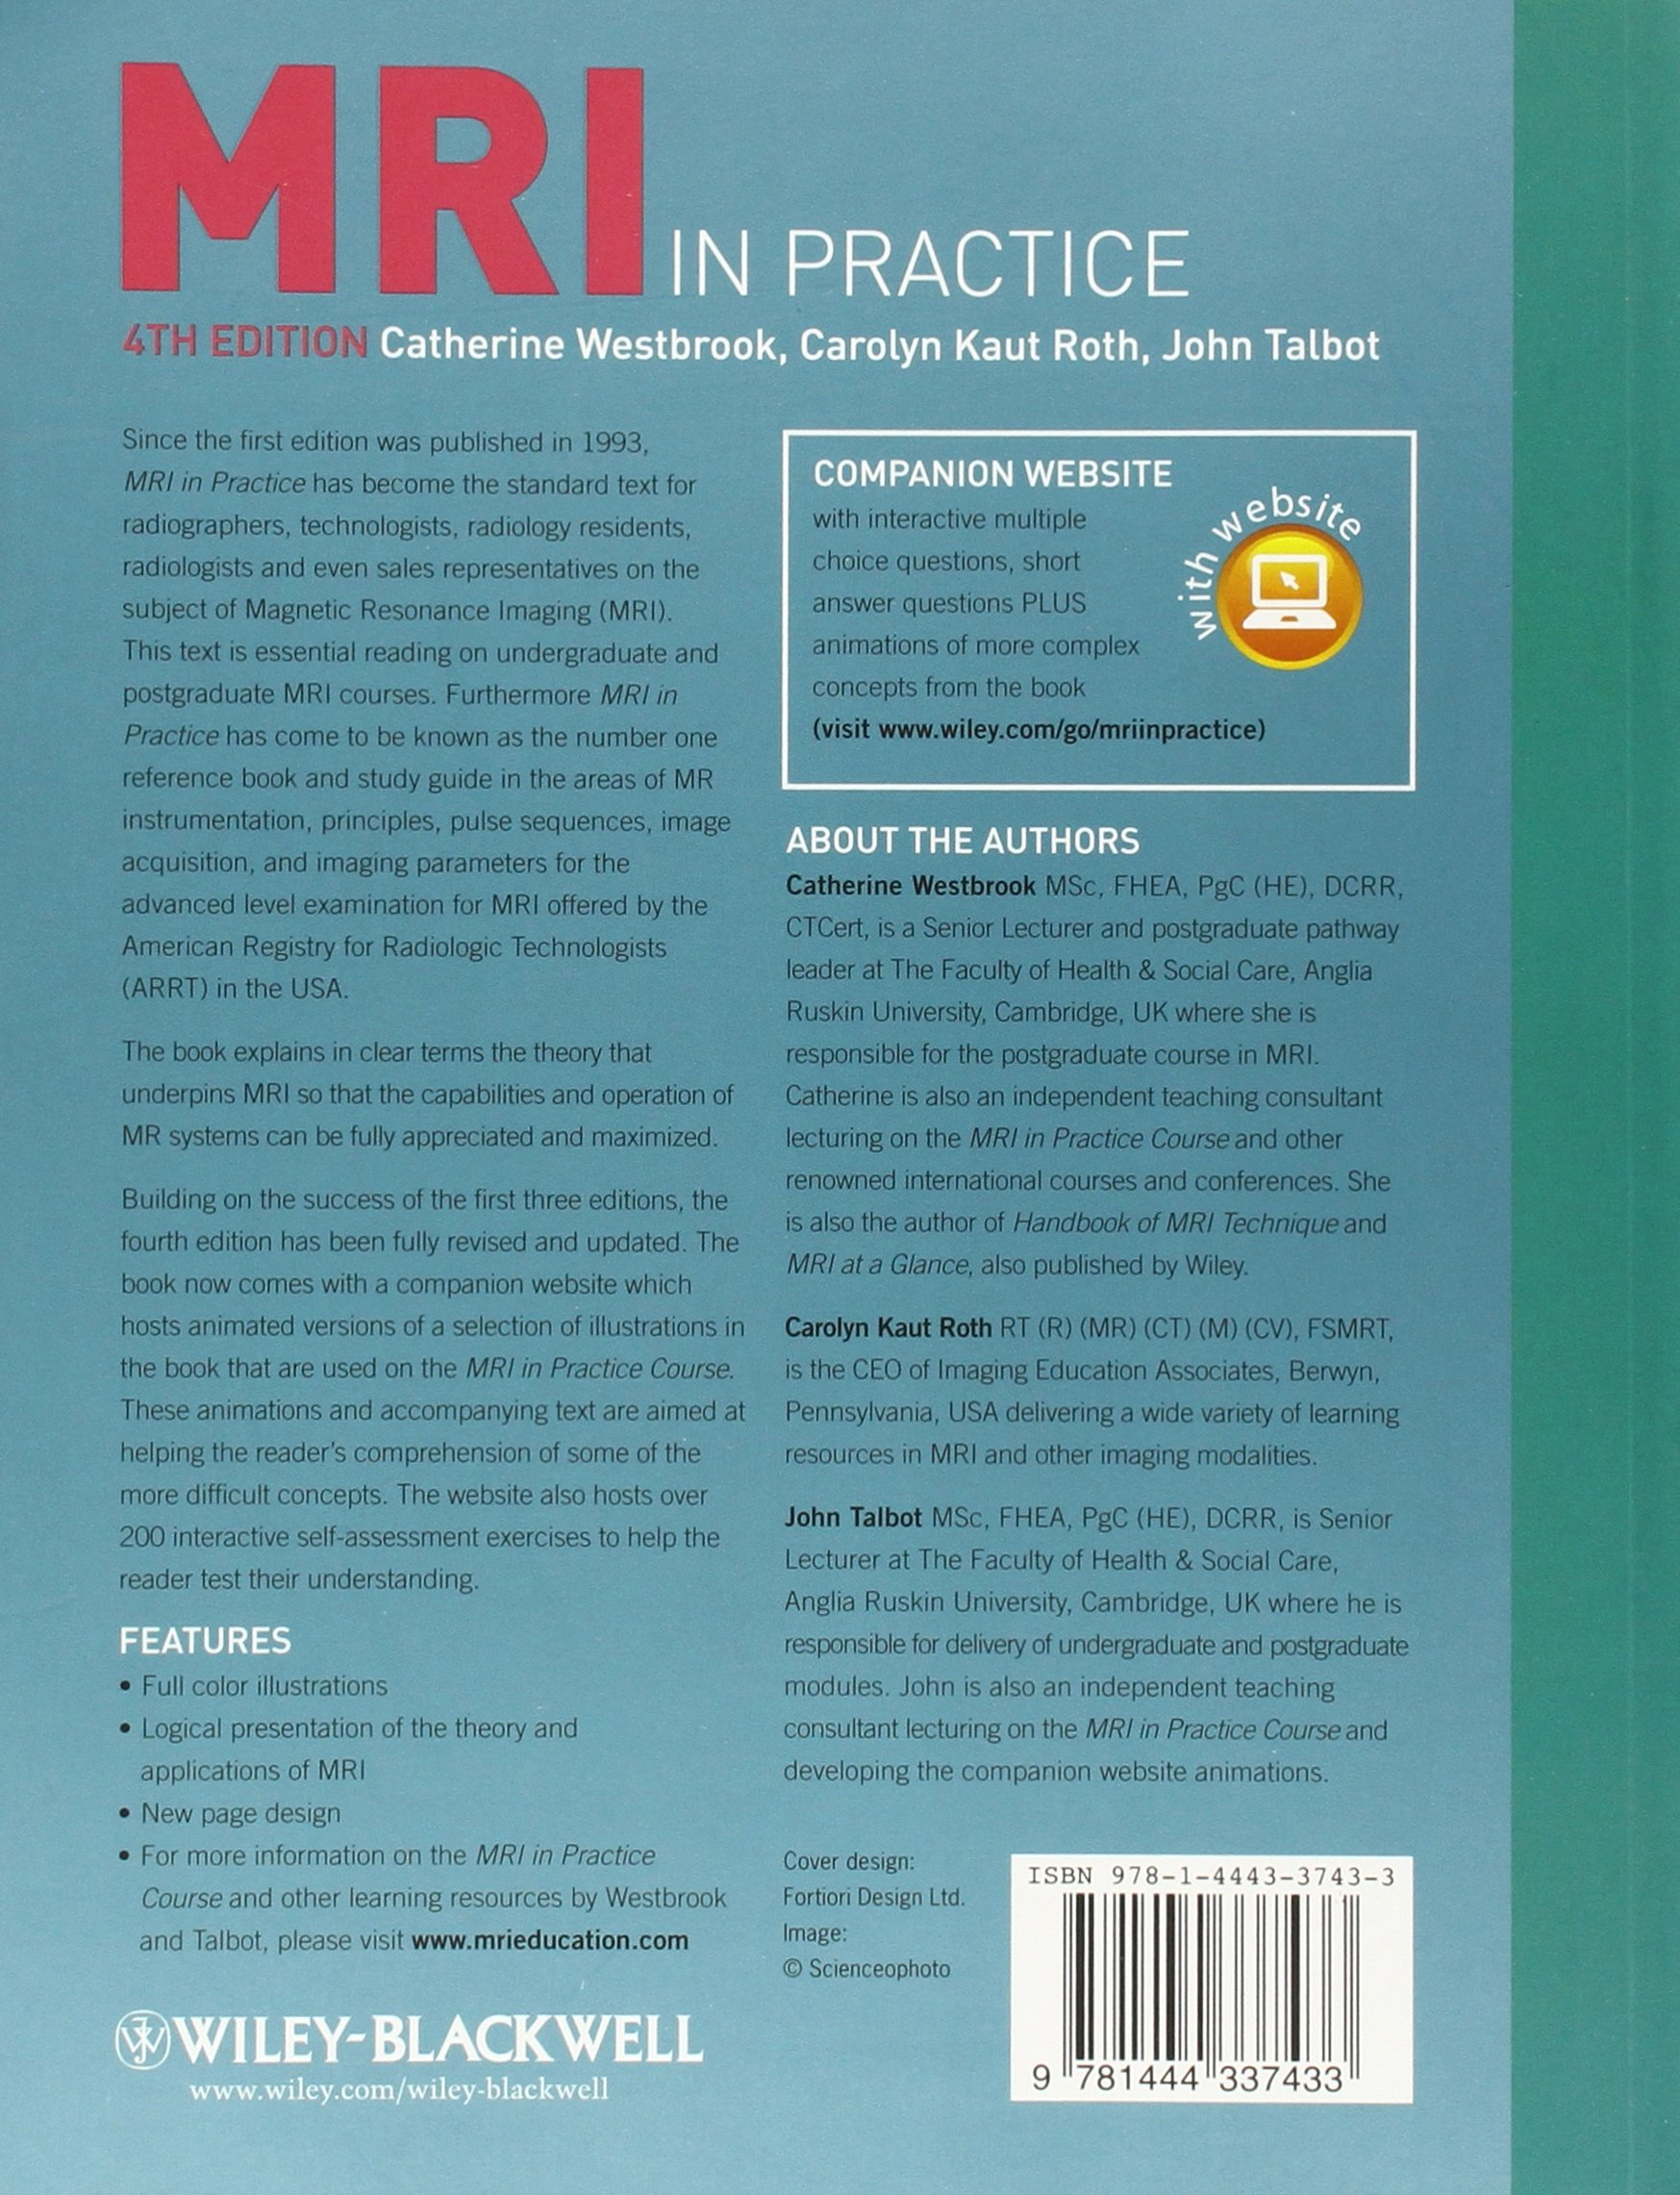 MRI IN PRACTICE EBOOK